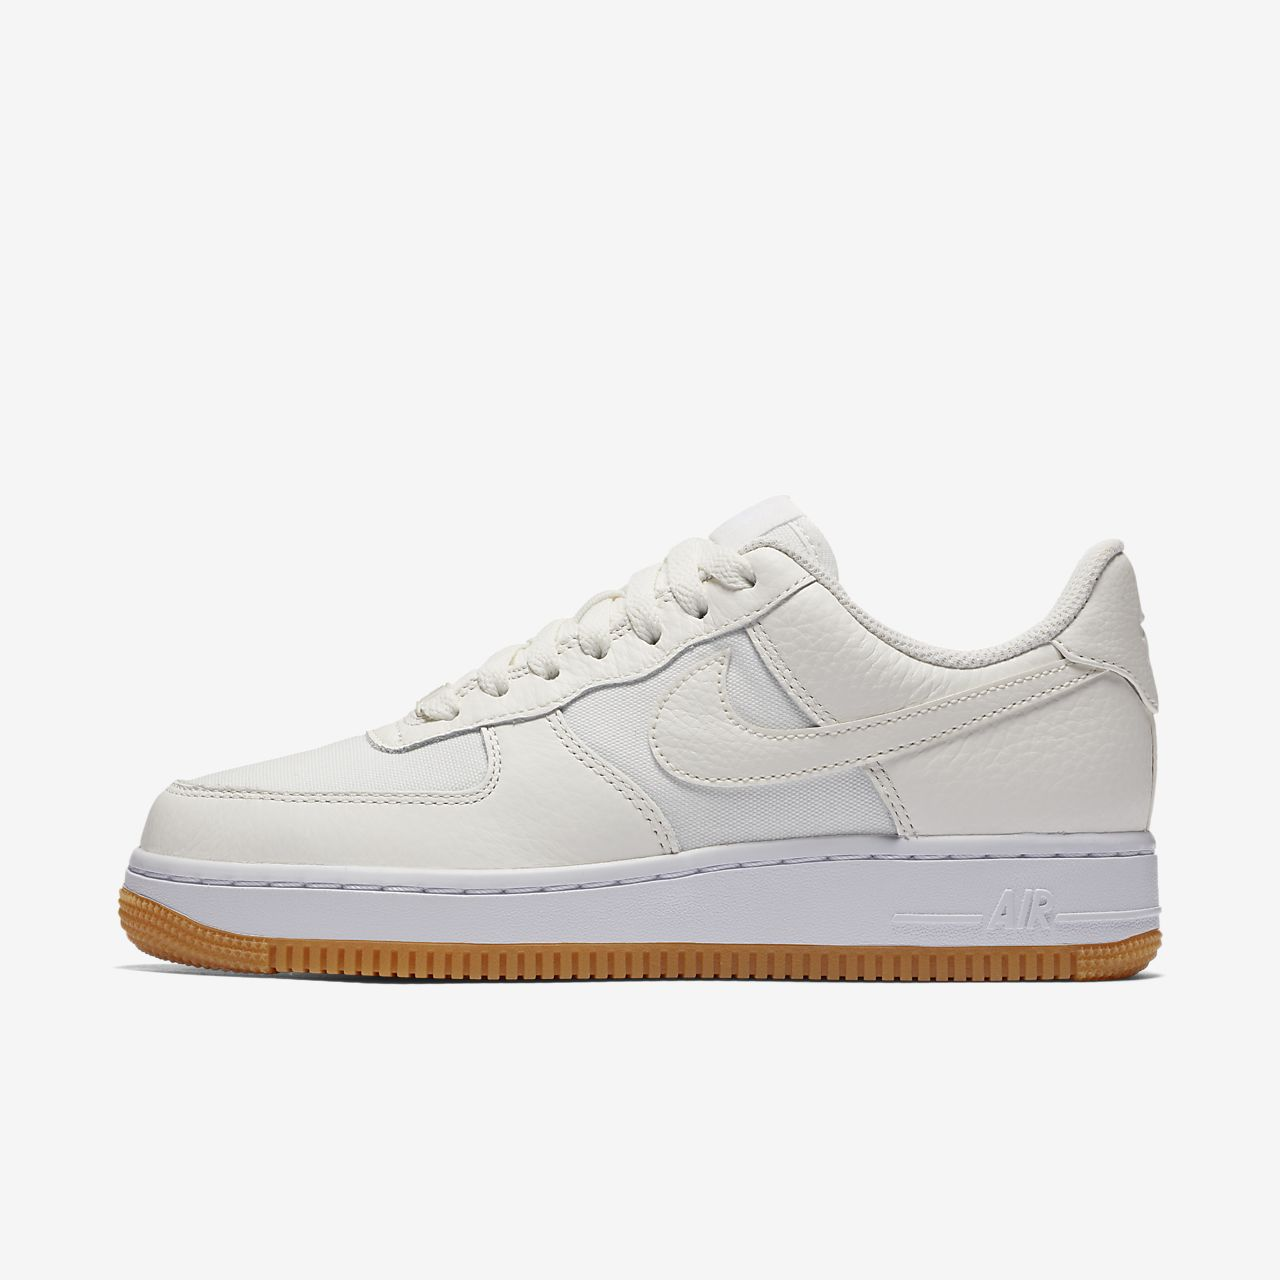 nike air force 1 high top white womens new zealand nz